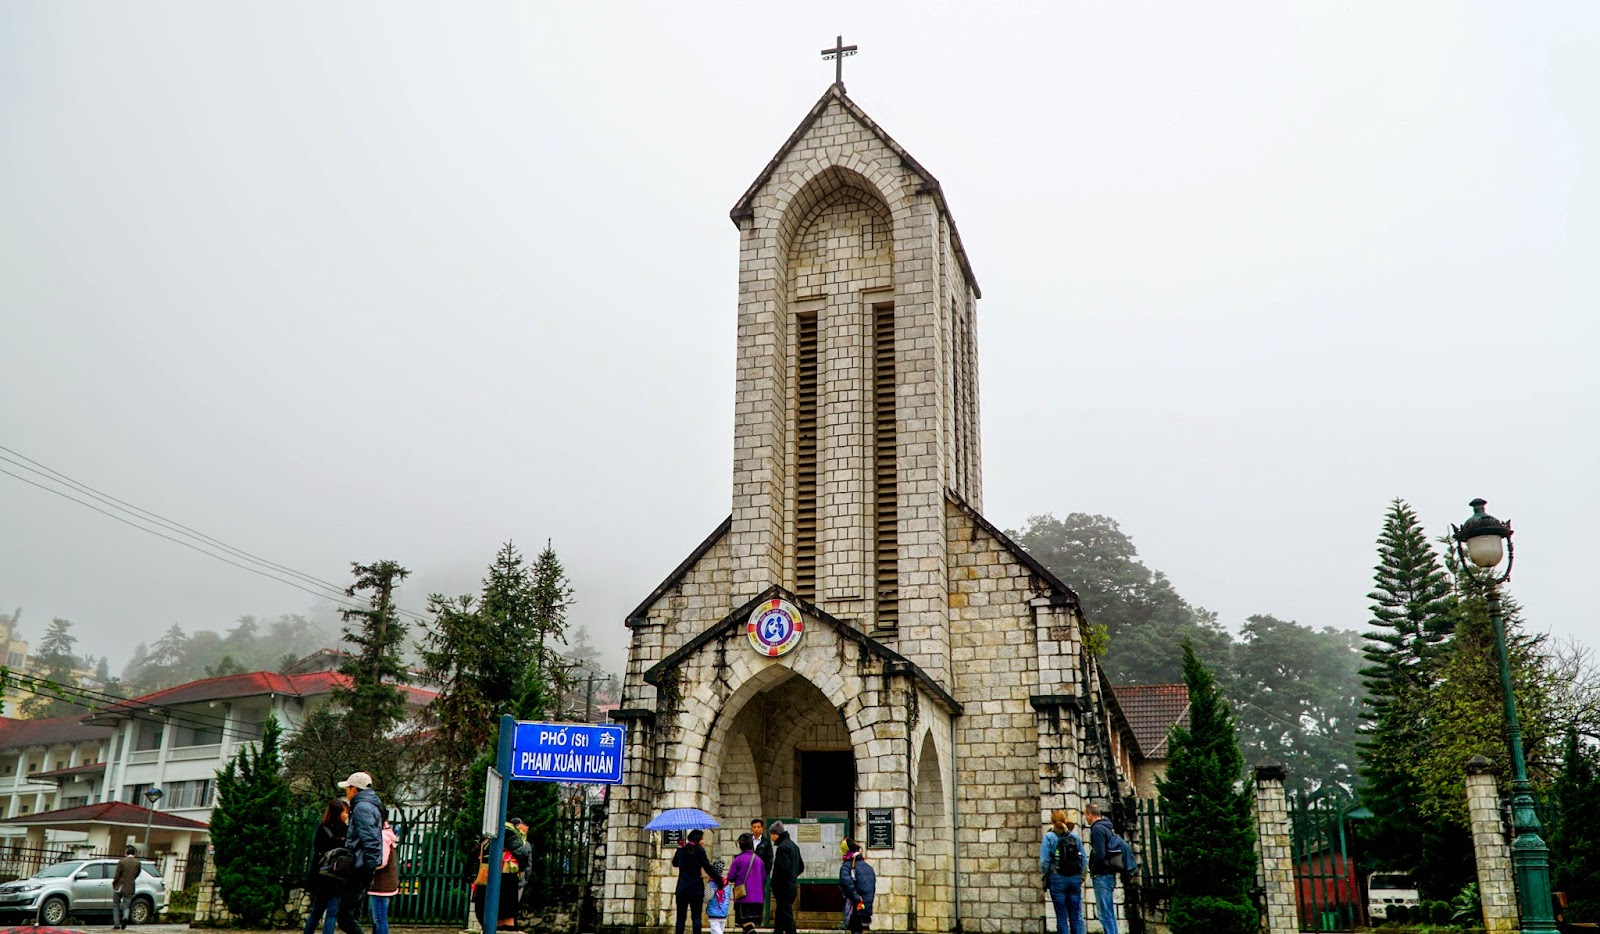 Passed by Sapa stone church on the way